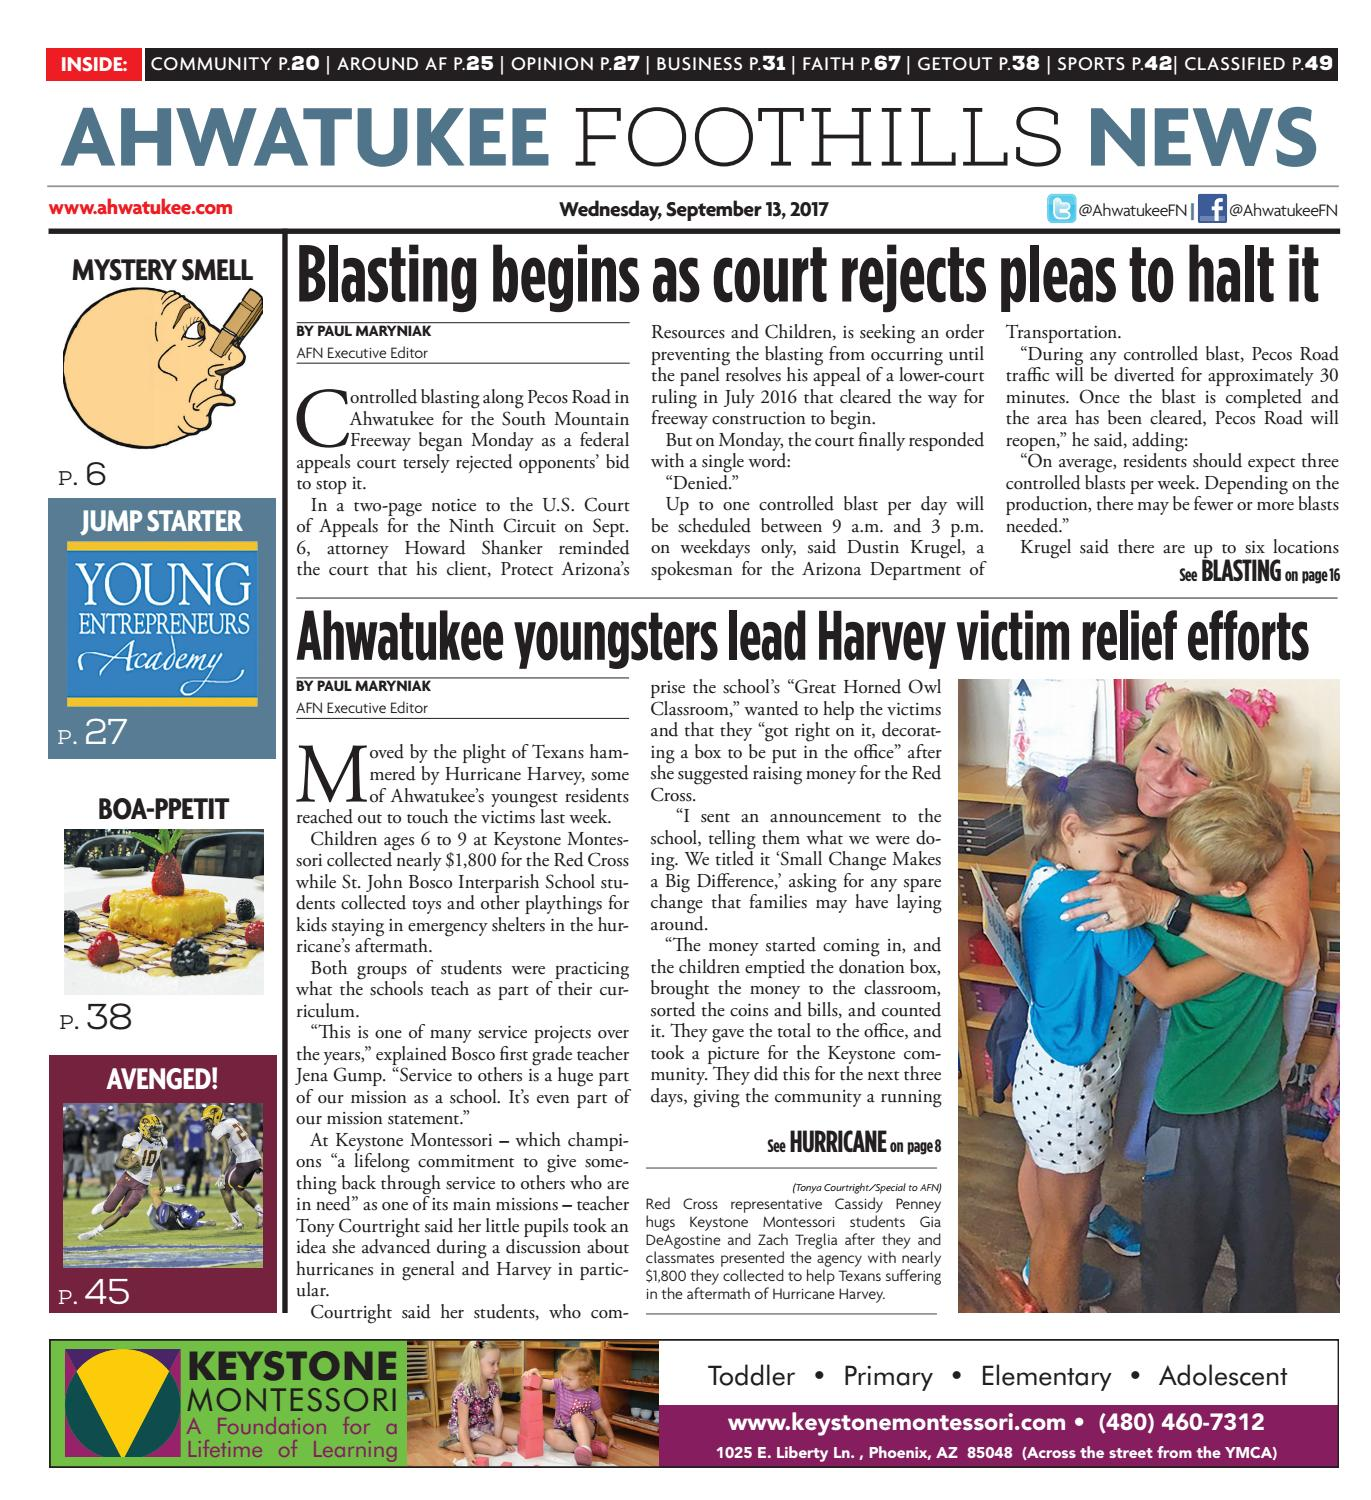 Ahwatukee Foothills News - September 13, 2017